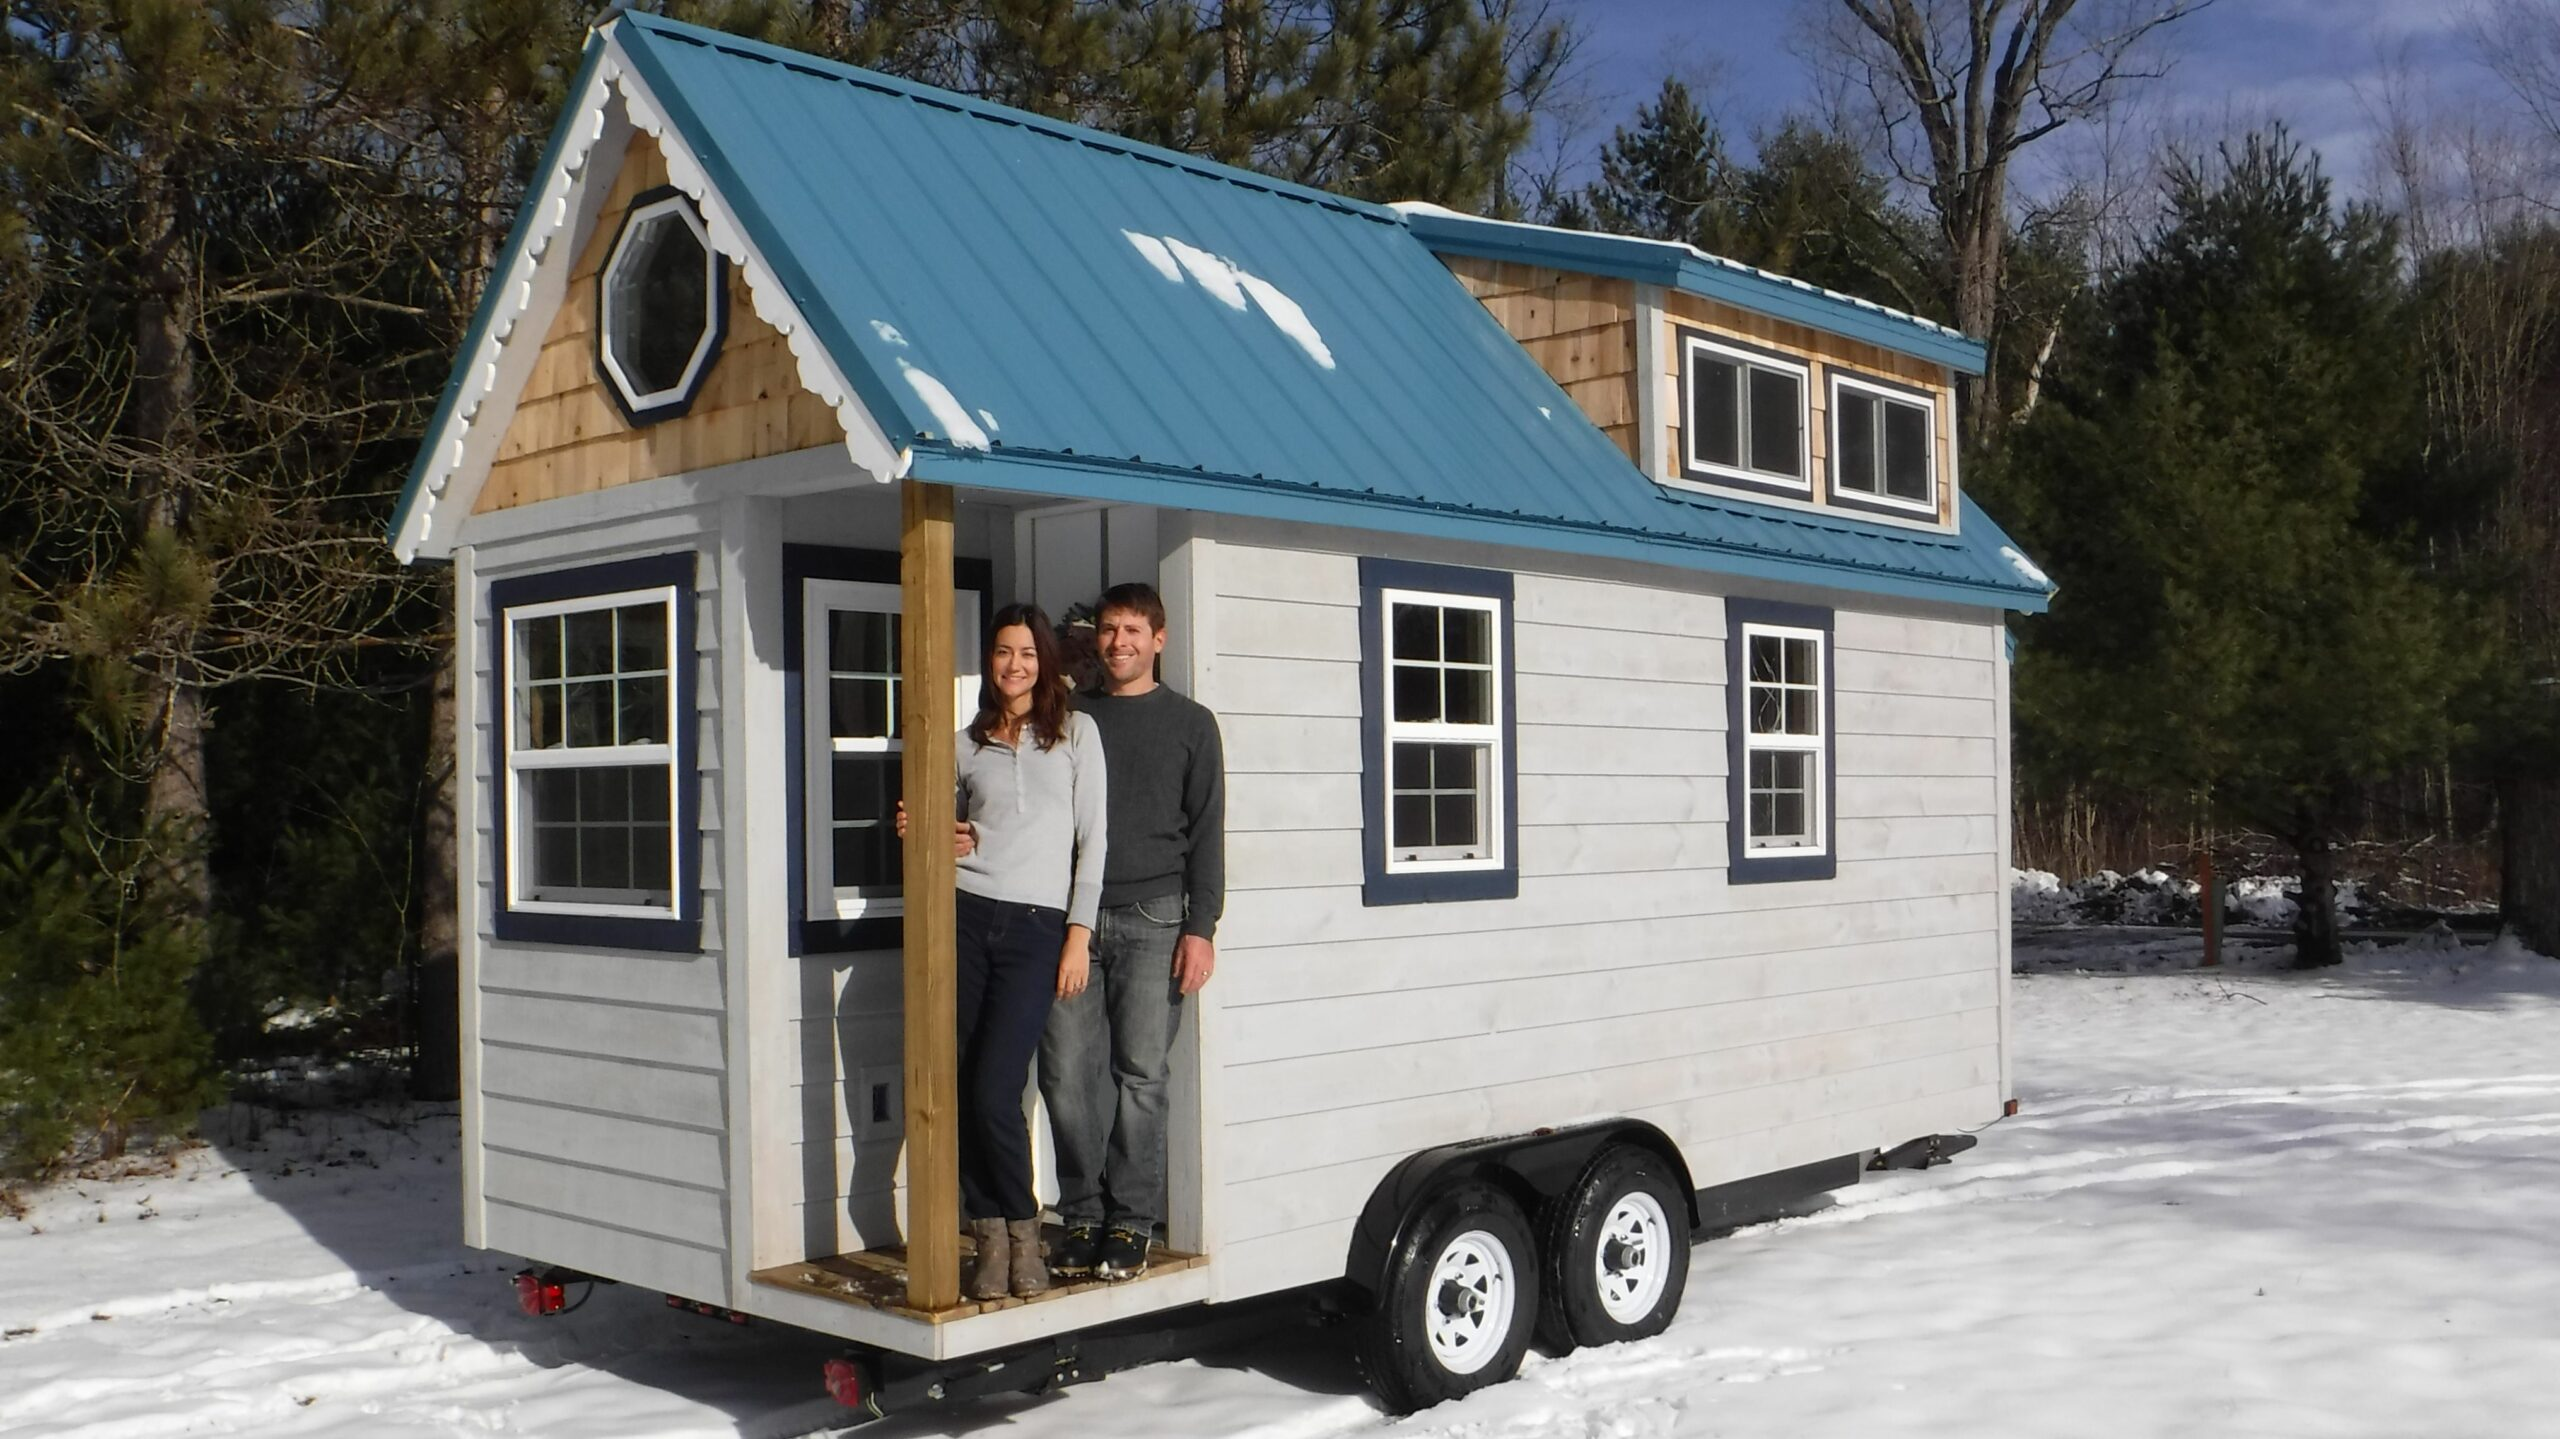 Tiny House Exterior - Complete! - Sailing Baby Blue